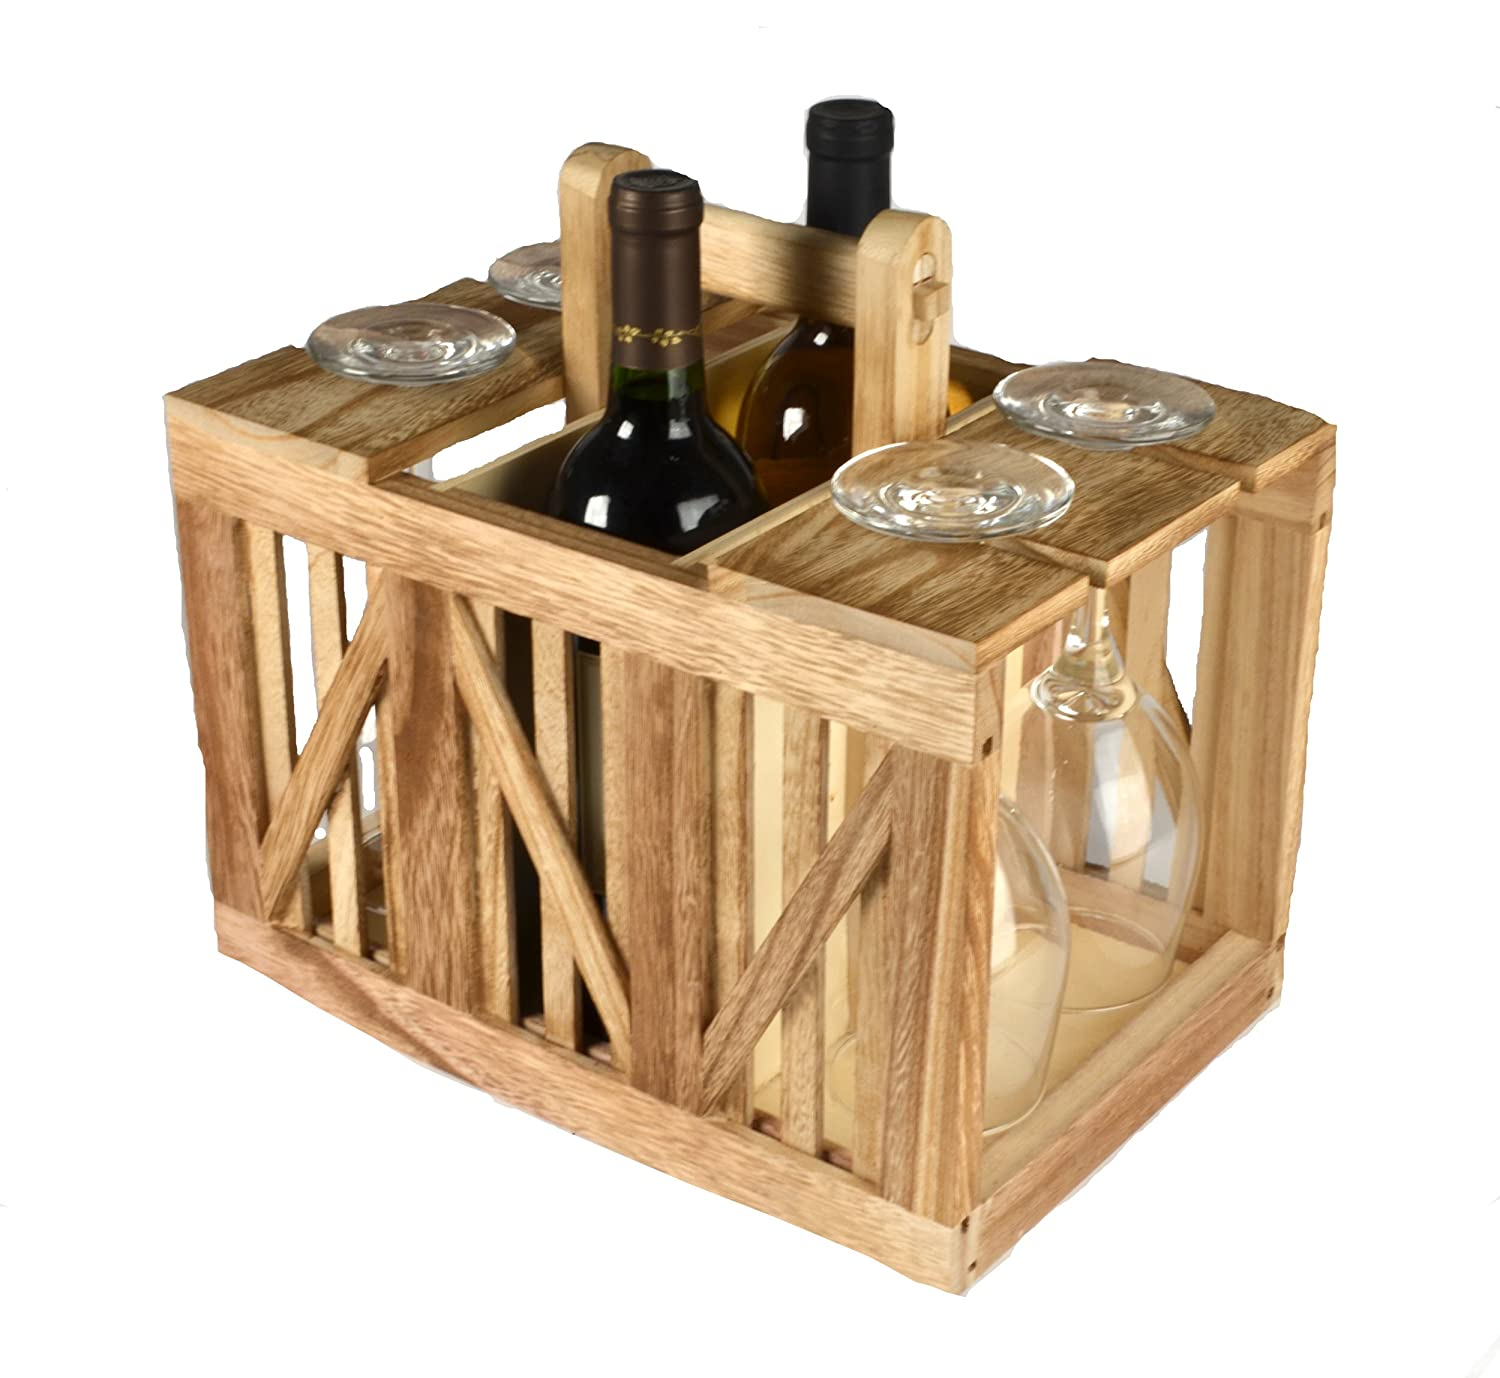 Artland 22109 Home Mixology Wine Caddy Wood Crate Beige